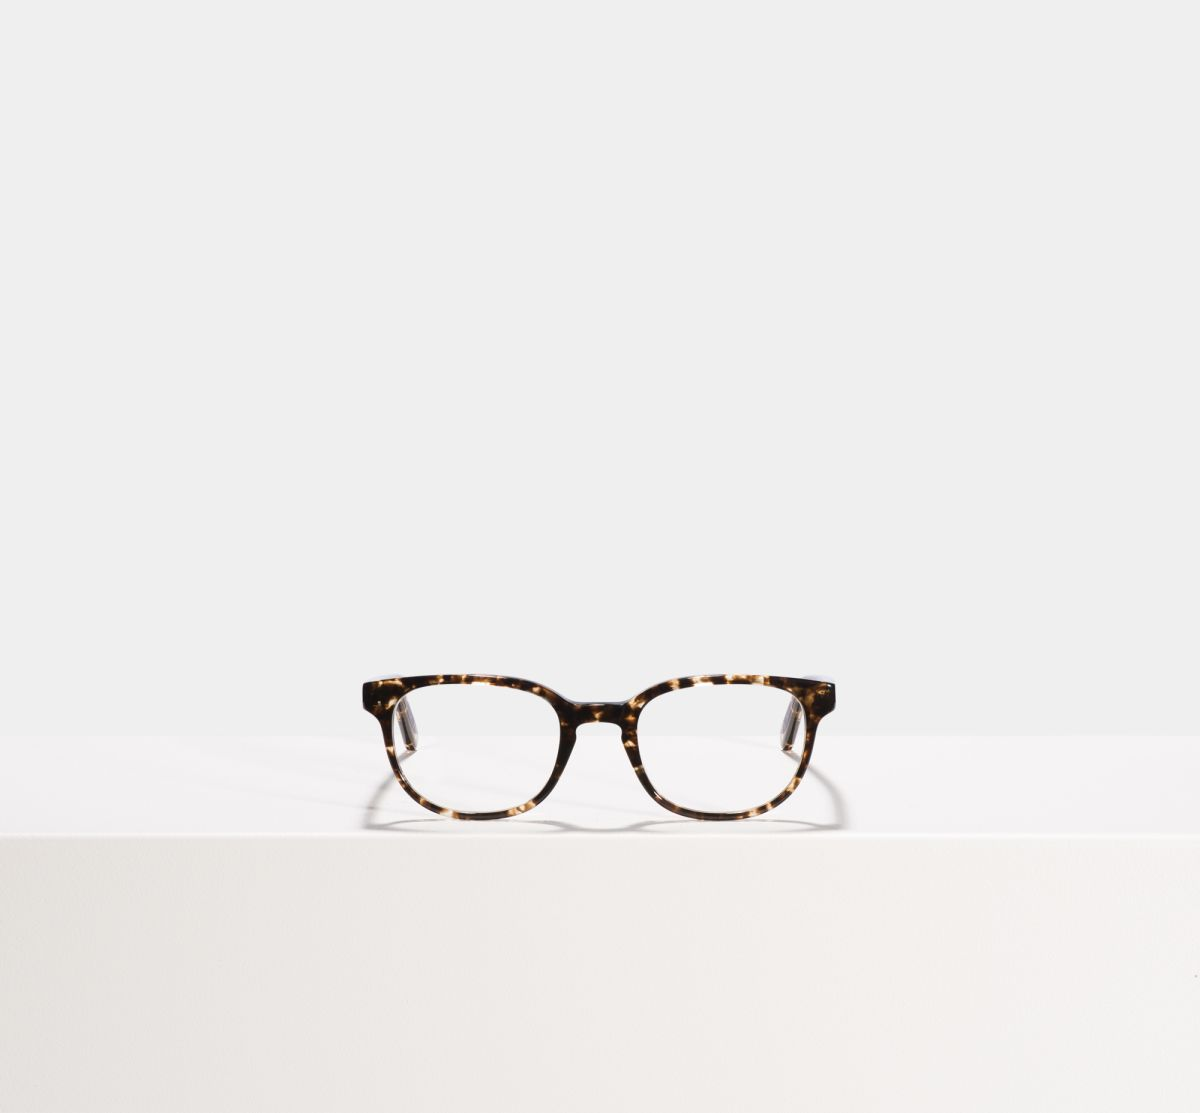 Finn rectangle acetate glasses in Chocolate Chip by Ace & Tate